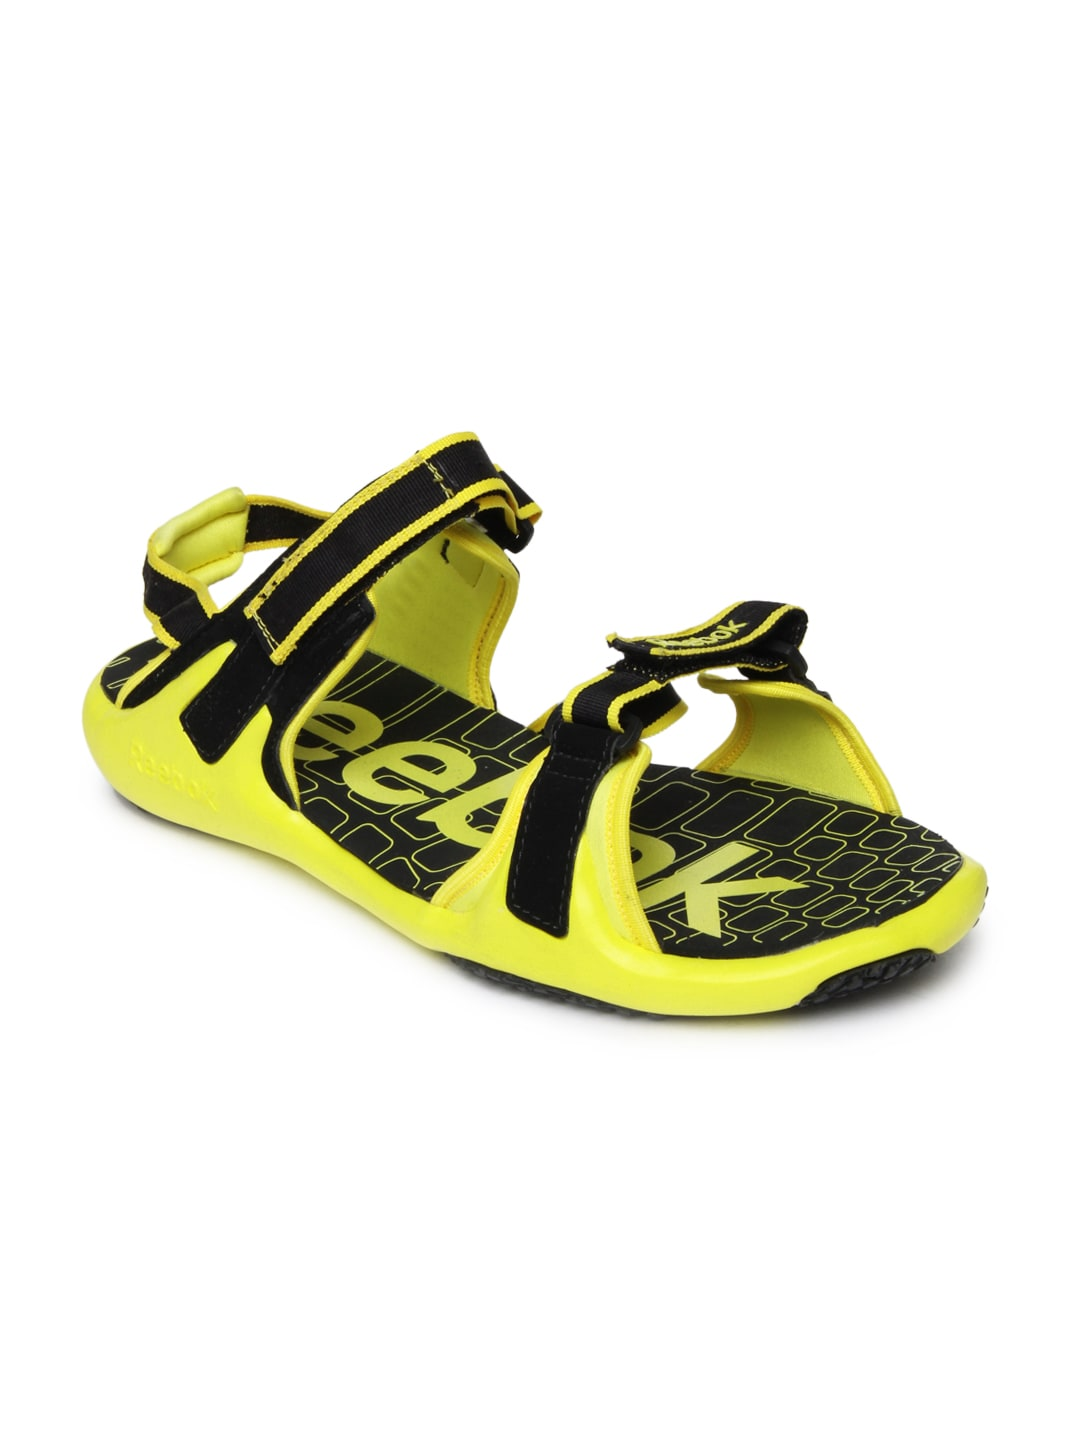 706a8062dcd118 Reebok m40325 Men Black And Yellow Adventure Grail Sports Sandals- Price in  India